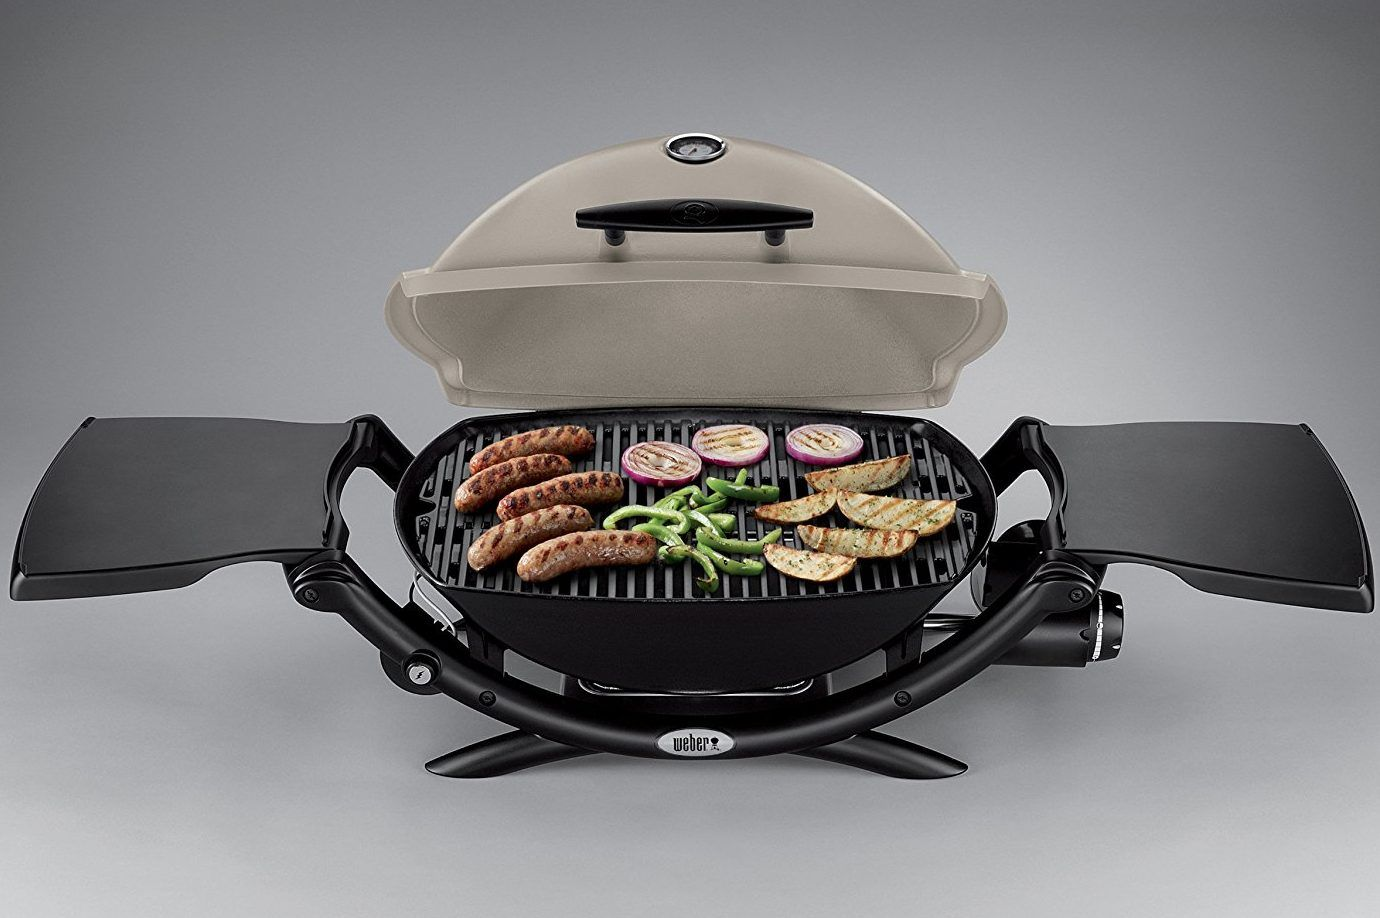 Discover The Weber Q2200 Grill Glampitupinfo Com Portable Gas Bbq Propane Grill Gas Grill